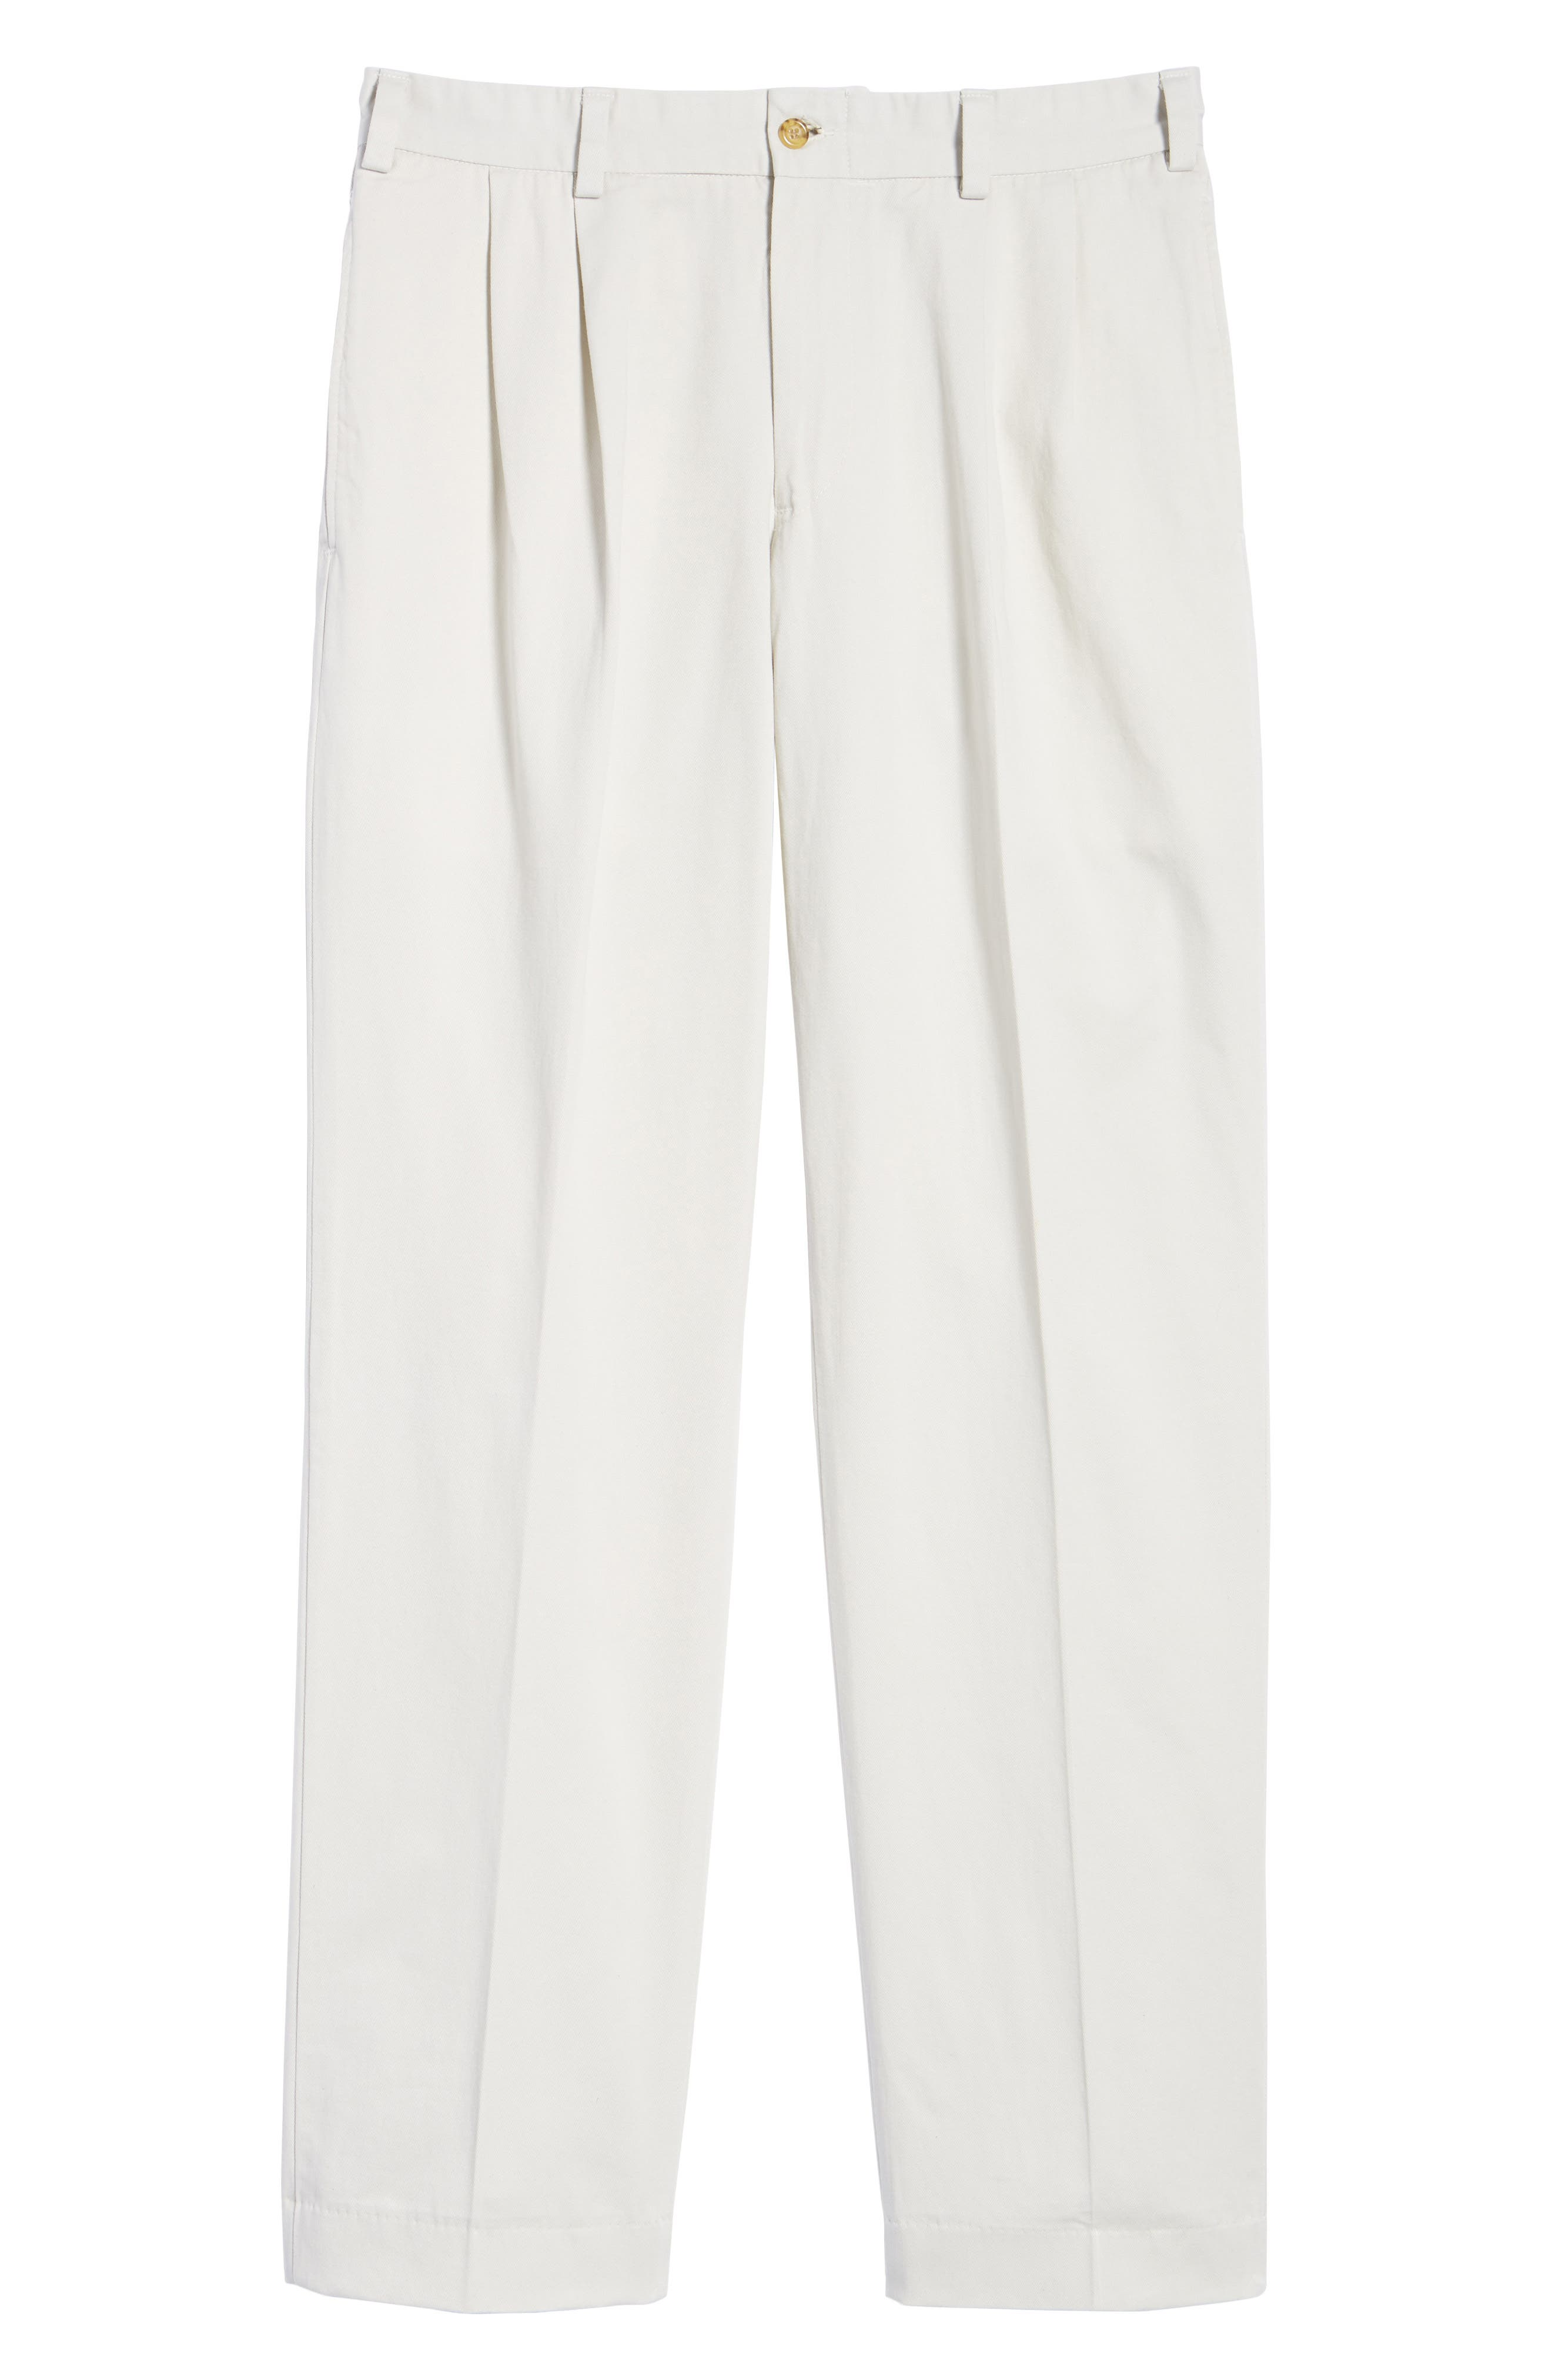 M2 Classic Fit Vintage Twill Pleated Pants,                             Alternate thumbnail 6, color,                             270